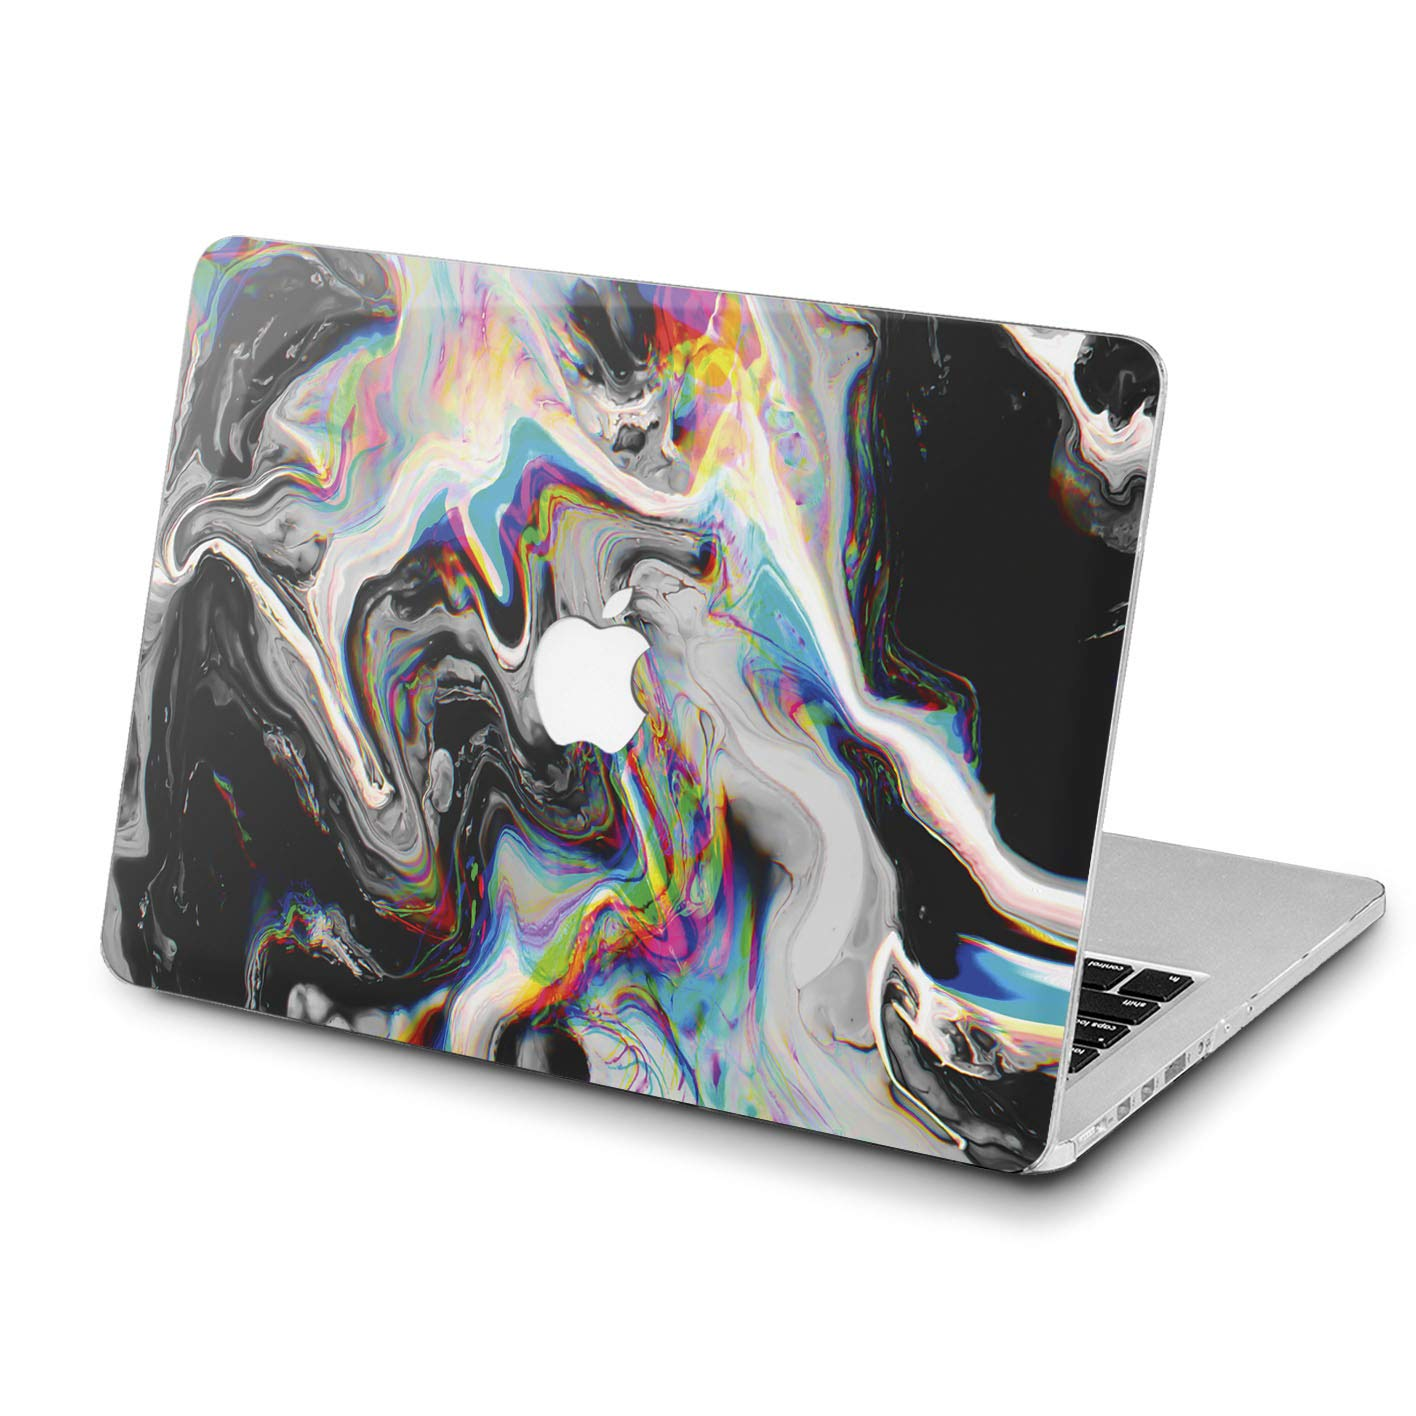 Lex Altern Hard Case for Apple MacBook Pro 15 Air 13 inch Mac Retina 12 11 2019 2018 2017 2016 2015 Abstract Cover Plastic Art Paint Touch Bar Rainbow Black Trippy Women Holographic Shell Glitch by Lex Altern